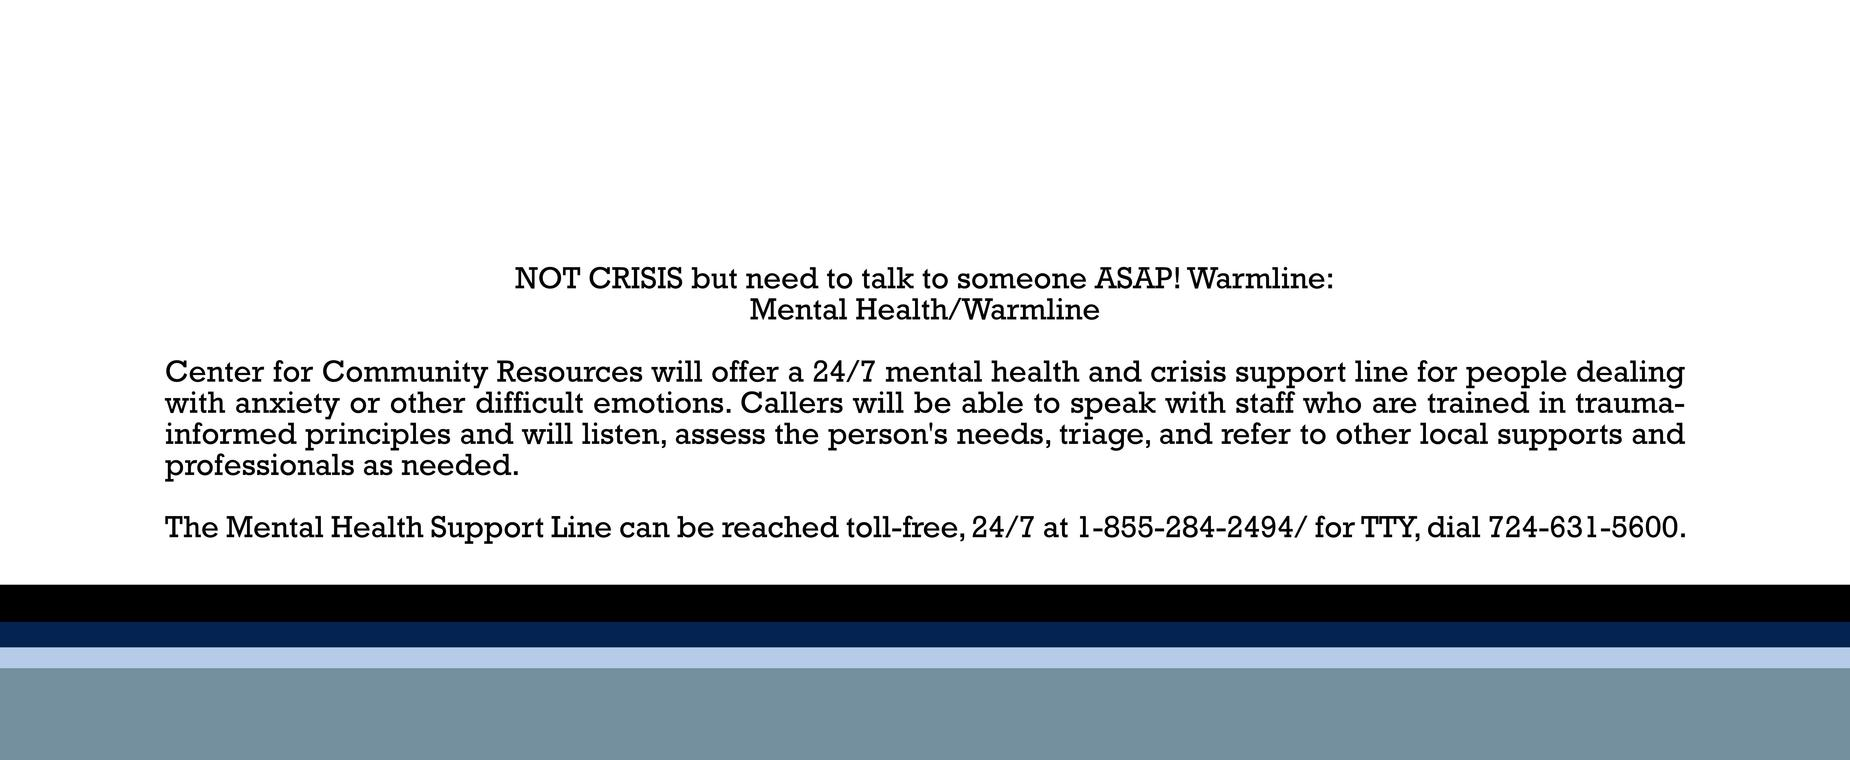 NOT CRISIS but need to talk to someone ASAP! Warmline: Mental Health/Warmline  Center for Community Resources will offer a 24/7 mental health and crisis support line for people dealing with anxiety or other difficult emotions. Callers will be able to speak with staff who are trained in trauma-informed principles and will listen, assess the person's needs, triage, and refer to other local supports and professionals as needed.  The Mental Health Support Line can be reached toll-free, 24/7 at 1-855-284-2494/ for TTY, dial 724-631-5600.